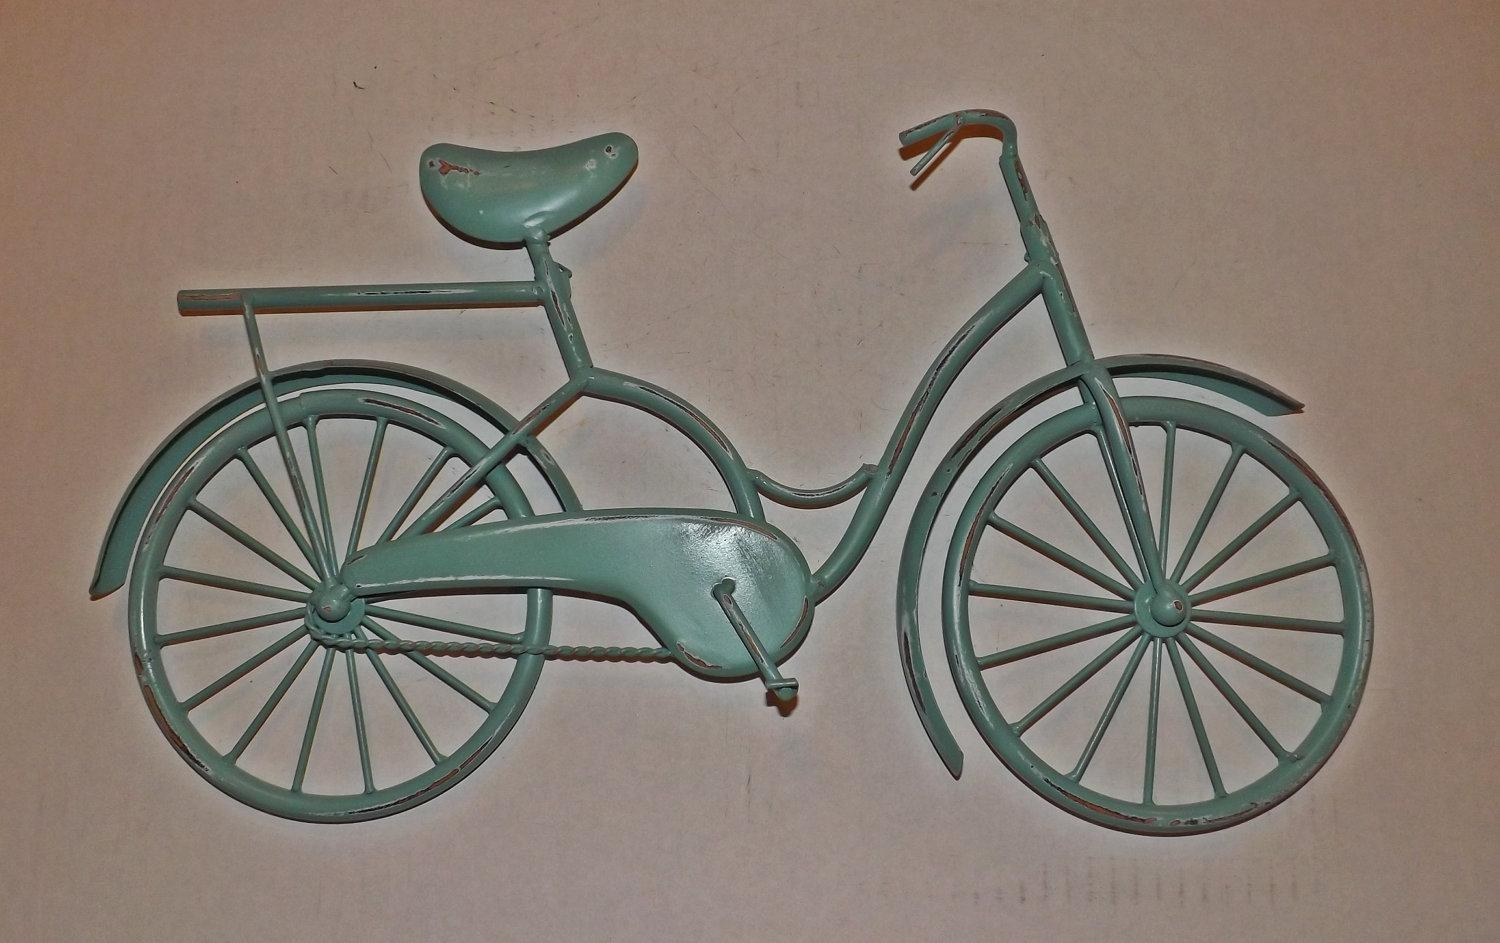 Wall Decor: Metal Bicycle Wall Art Design (View 2 of 20)